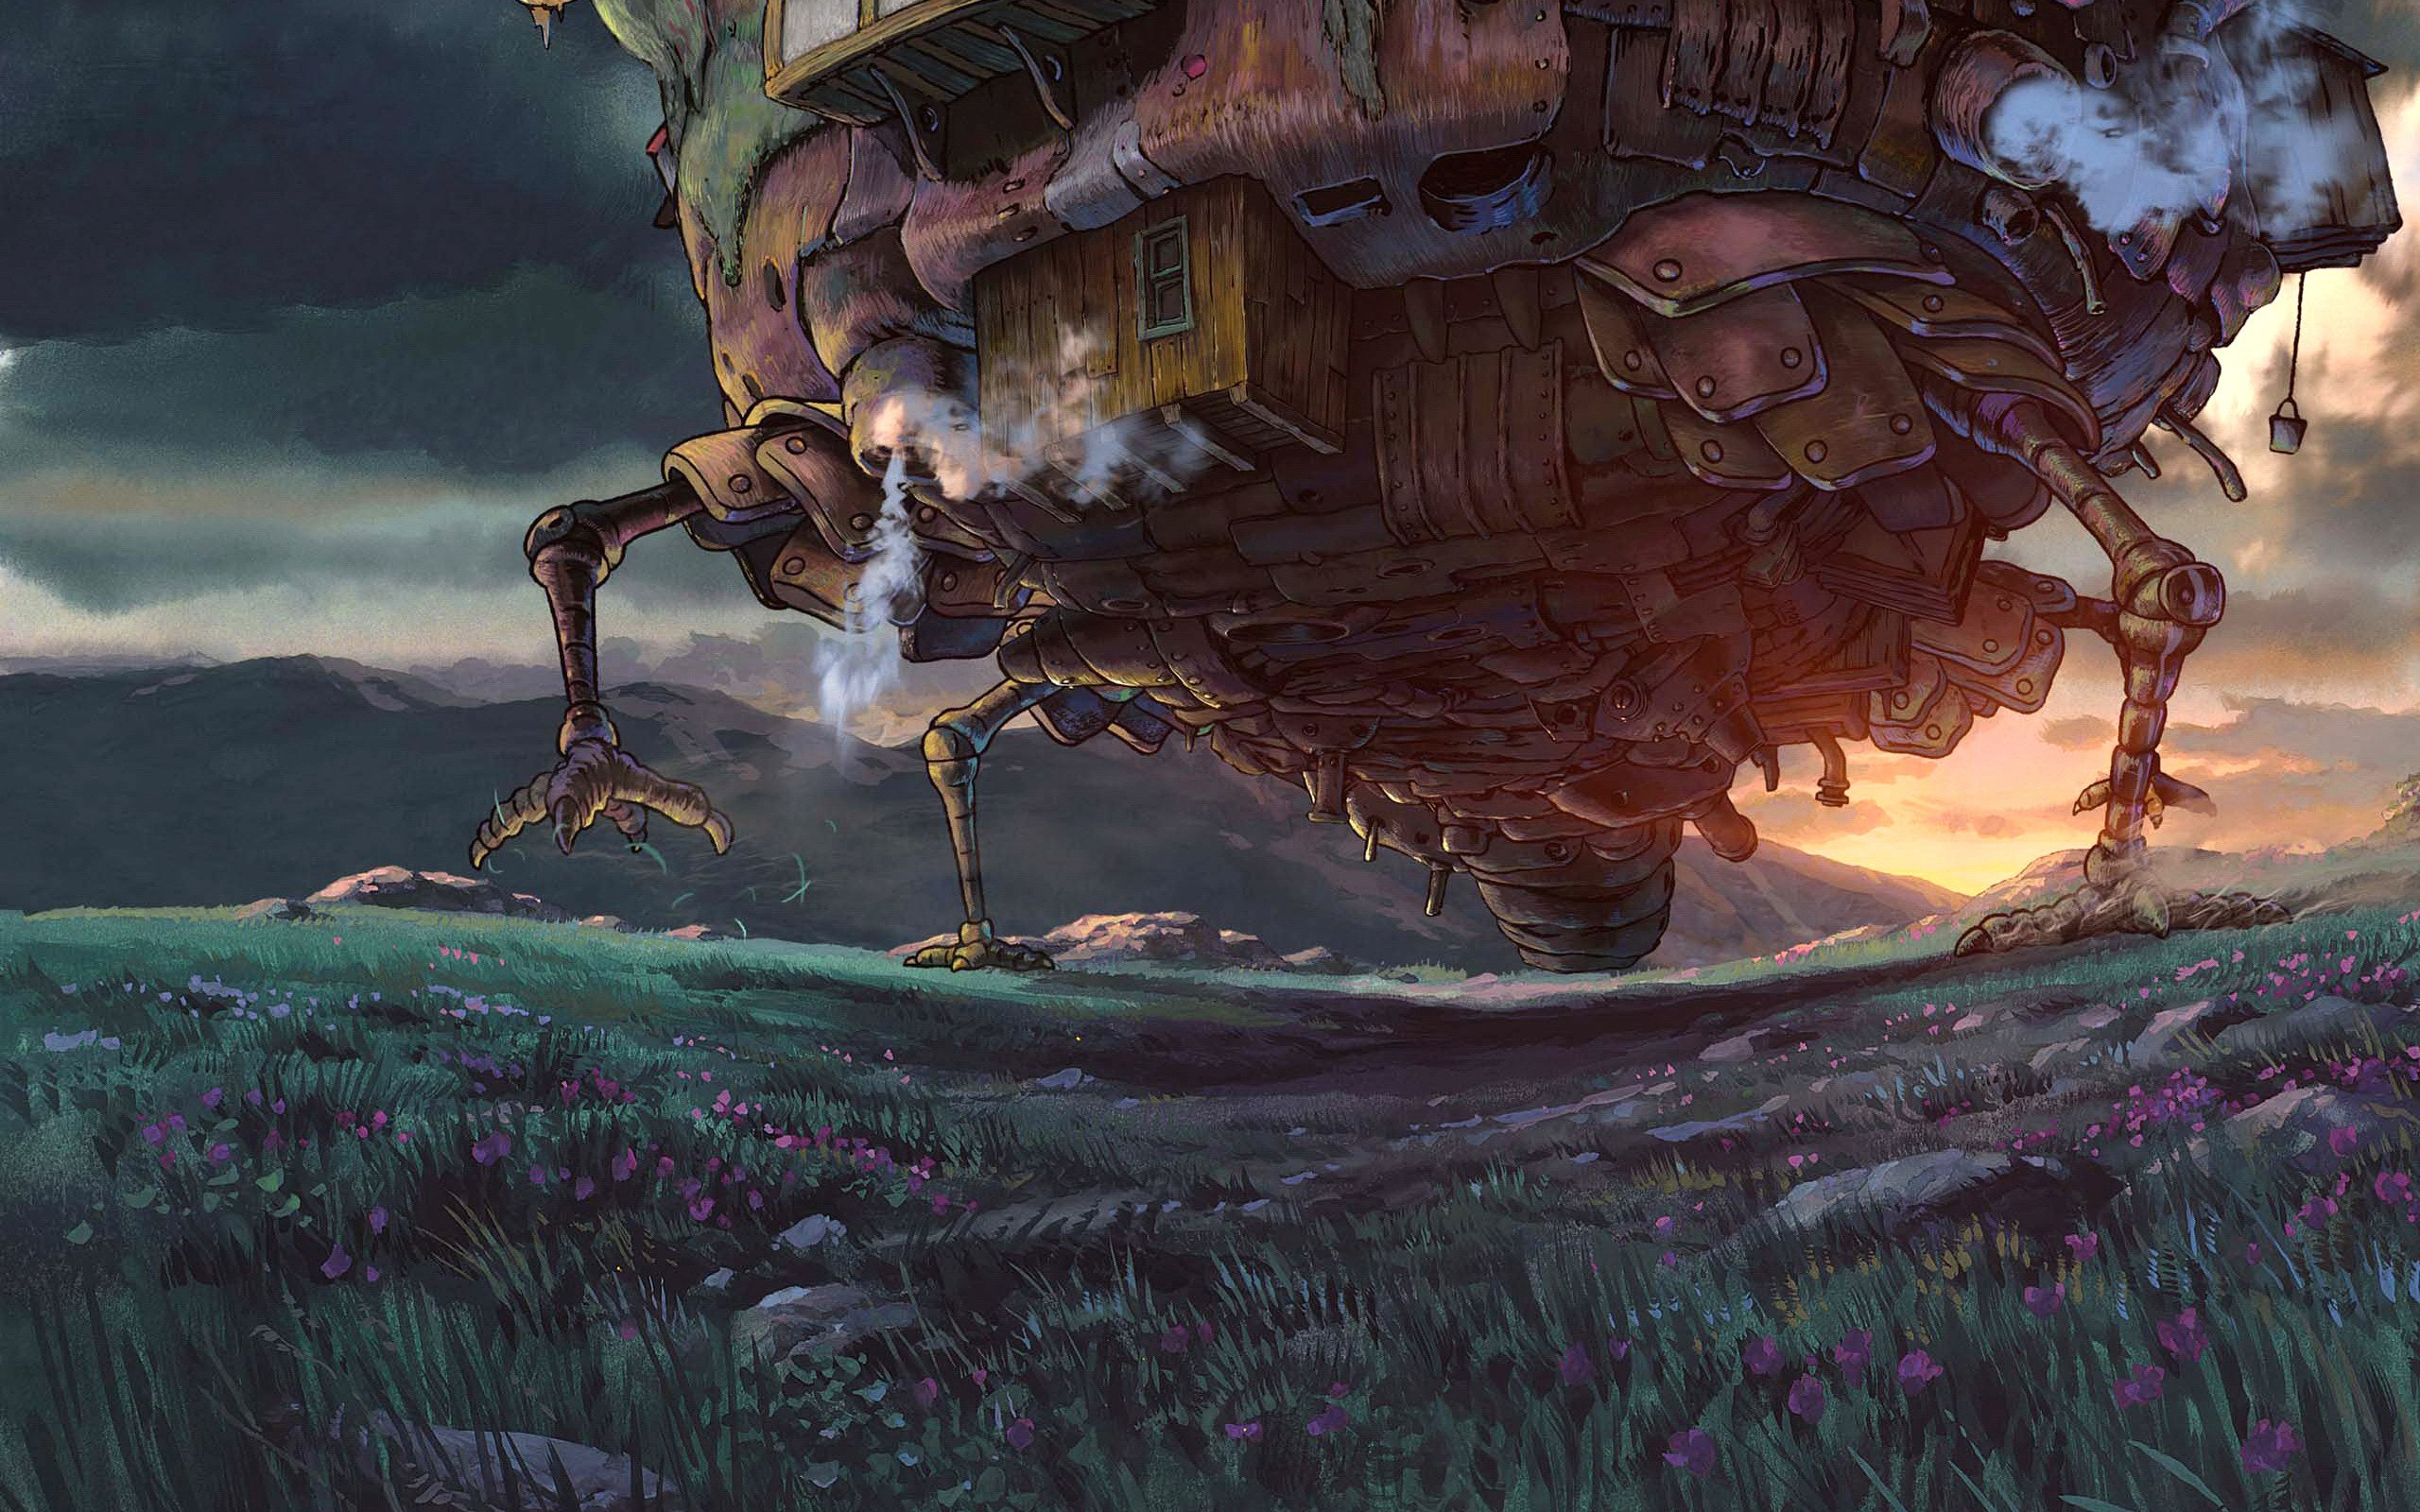 Artwork studio ghibli anime howls moving castle hauru free artwork studio ghibli anime howls moving castle hauru free wallpaper wallpaperjam voltagebd